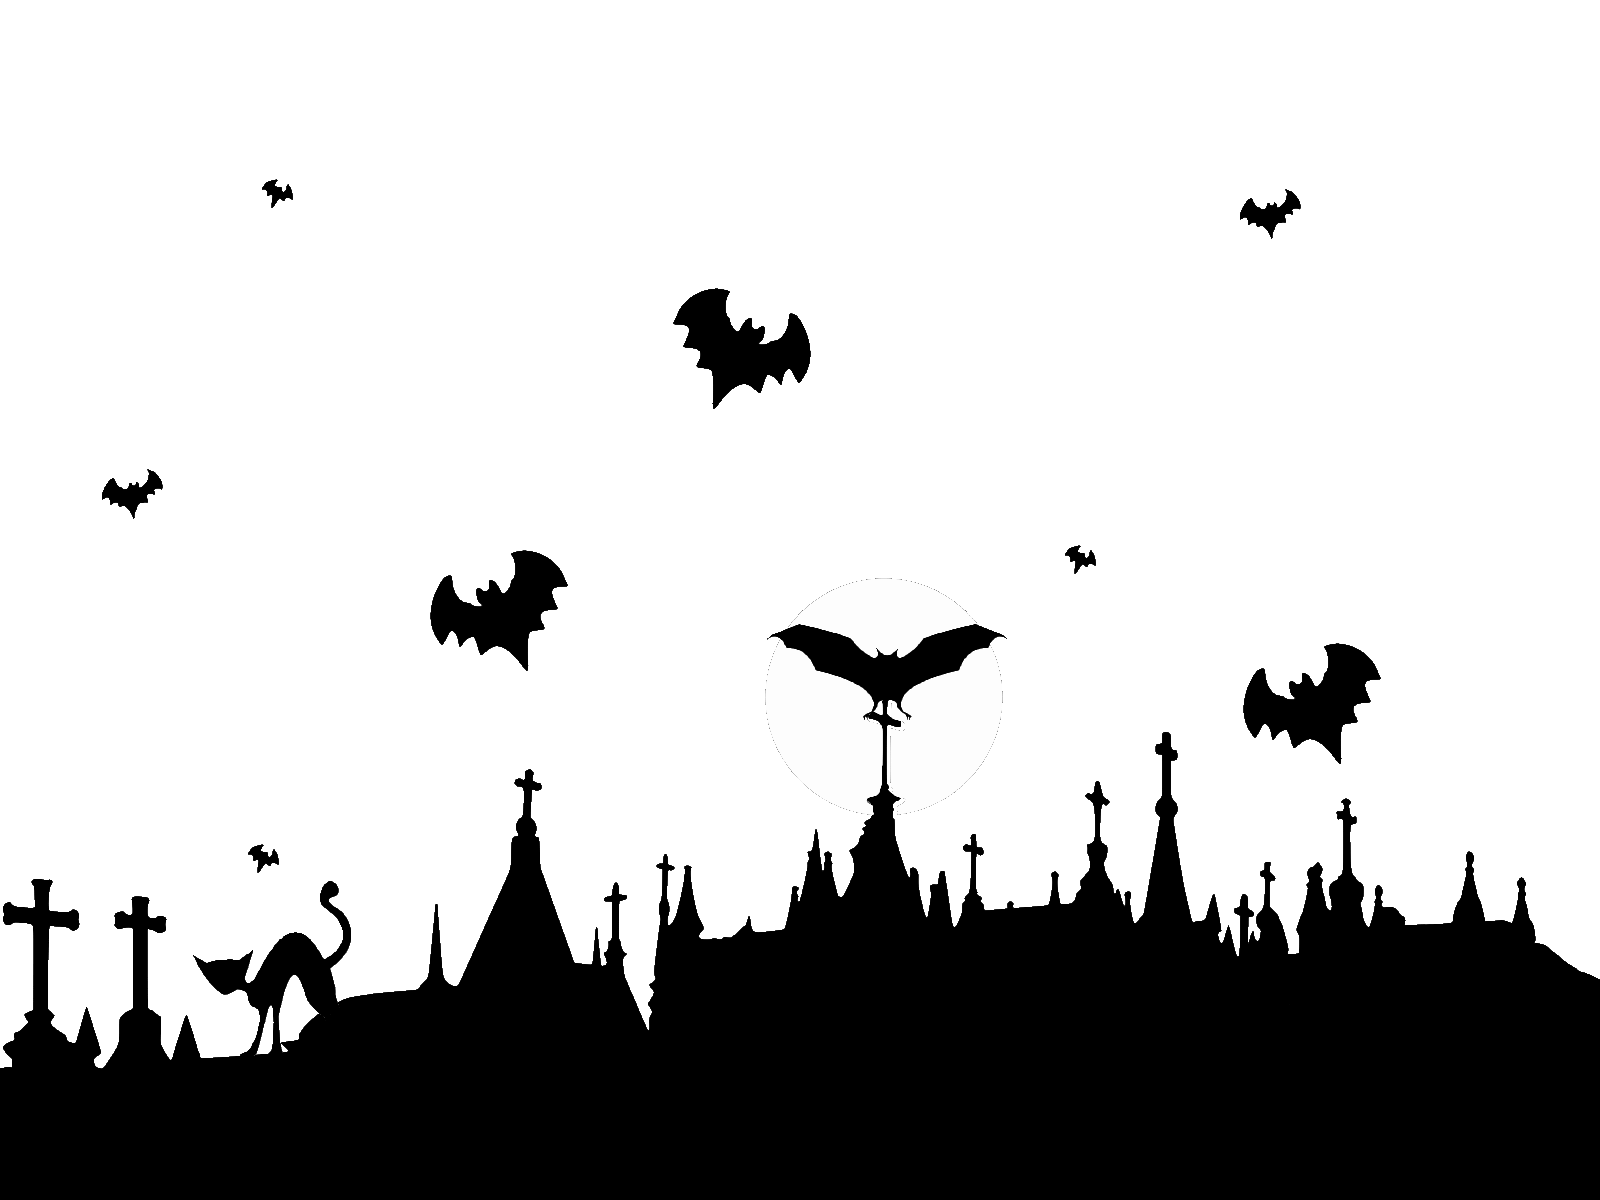 Halloween png transparent background. Graveyard keeler contracting and